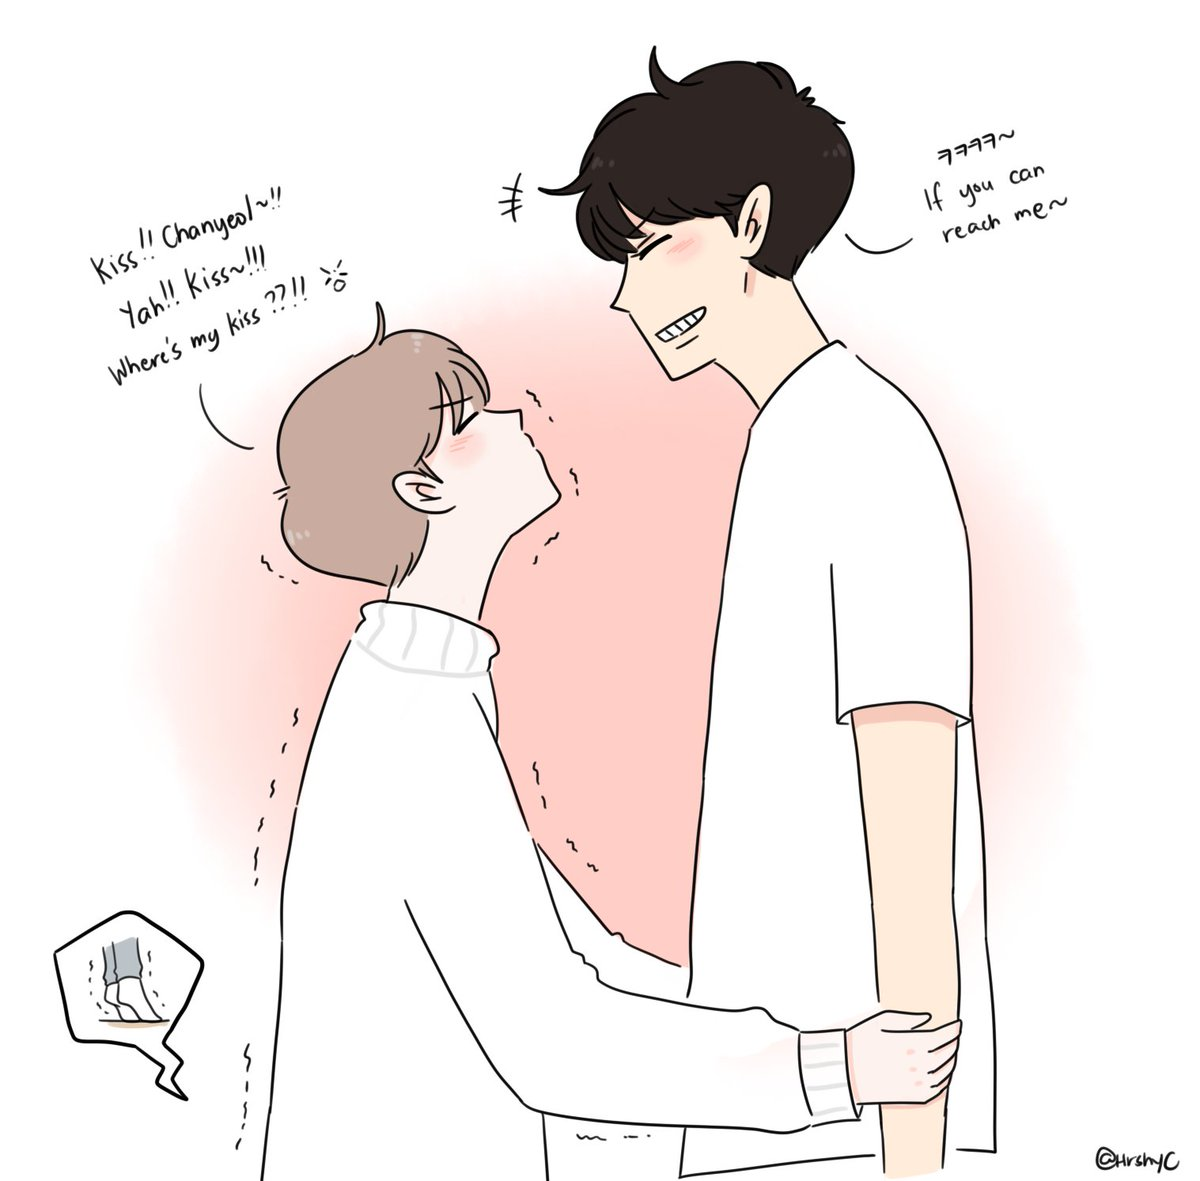 a giant teasing his small puppy  #chanbaek #exofanart<br>http://pic.twitter.com/0VZ2xFynSF